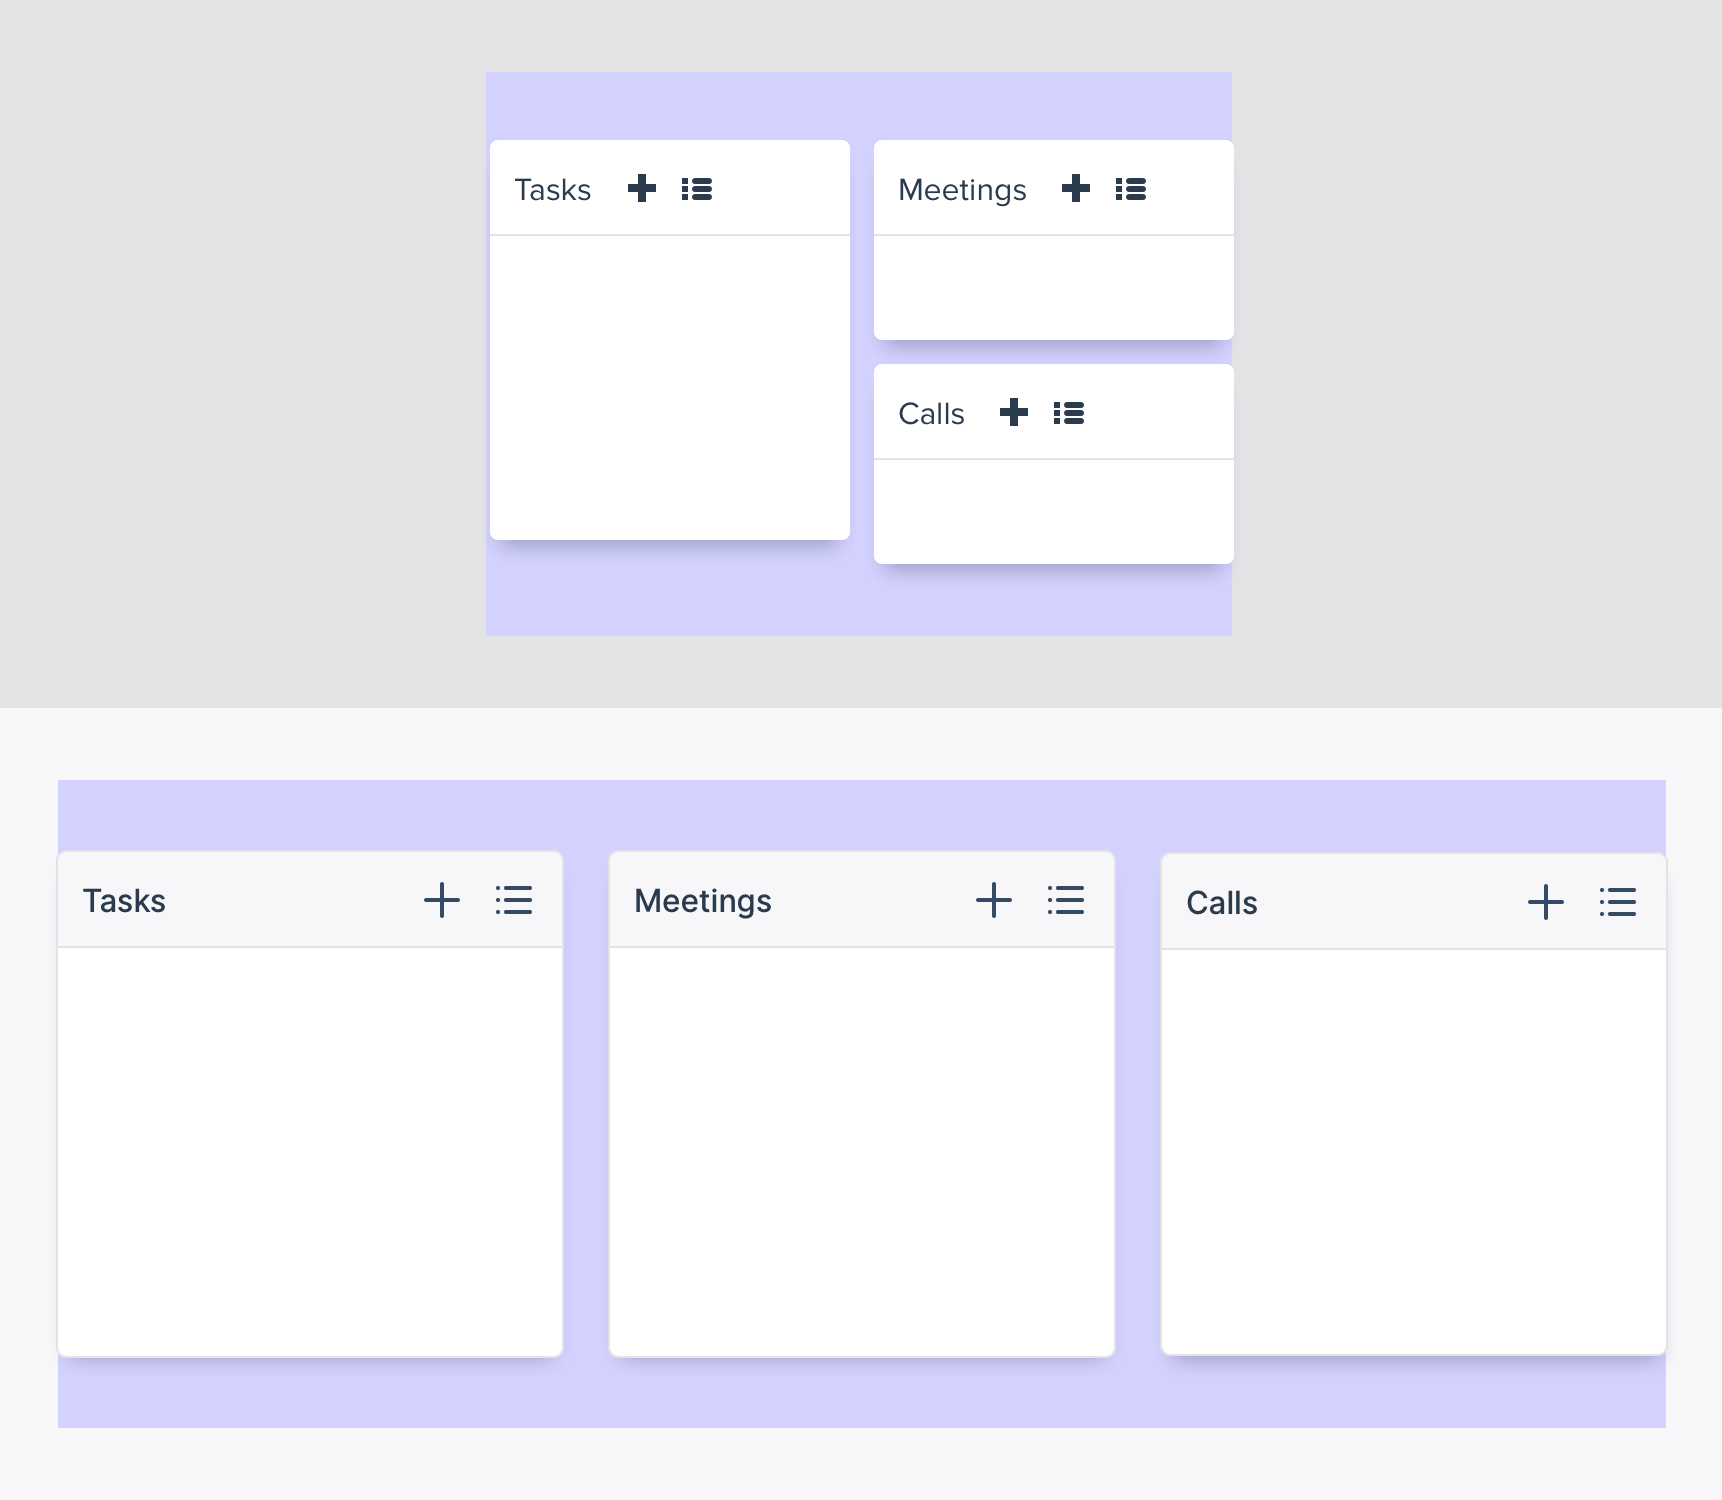 The old versus the new design of the main dashboard widgets